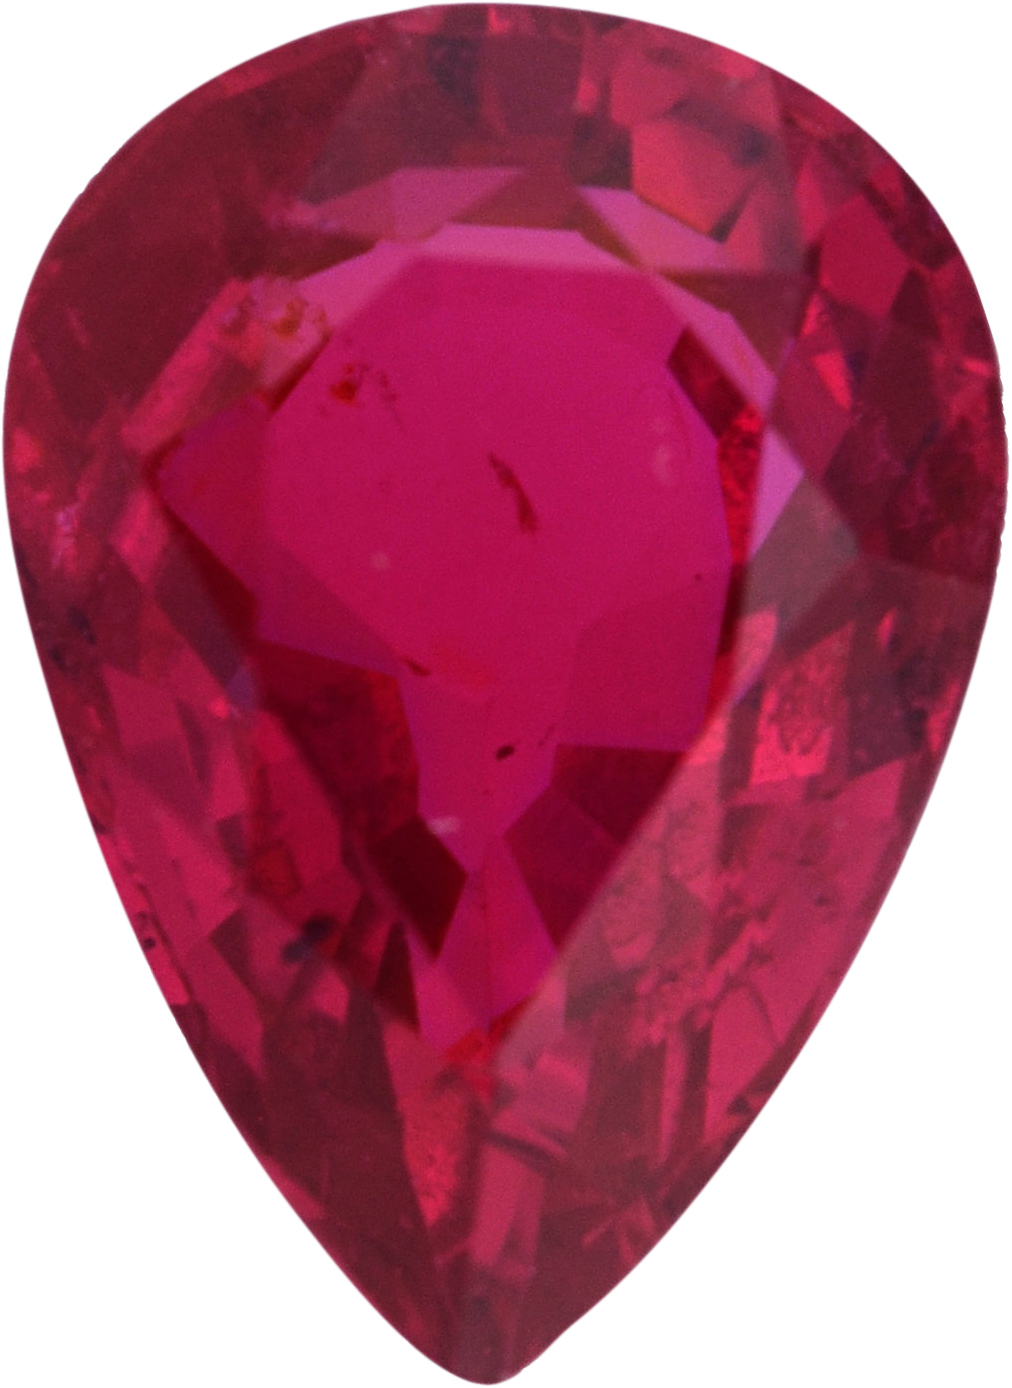 Nice Looking  No Heat Ruby Loose Gem in Pear Cut, Medium Strong Purple Red, 7.14 x 5.15  mm, 1.03 Carats